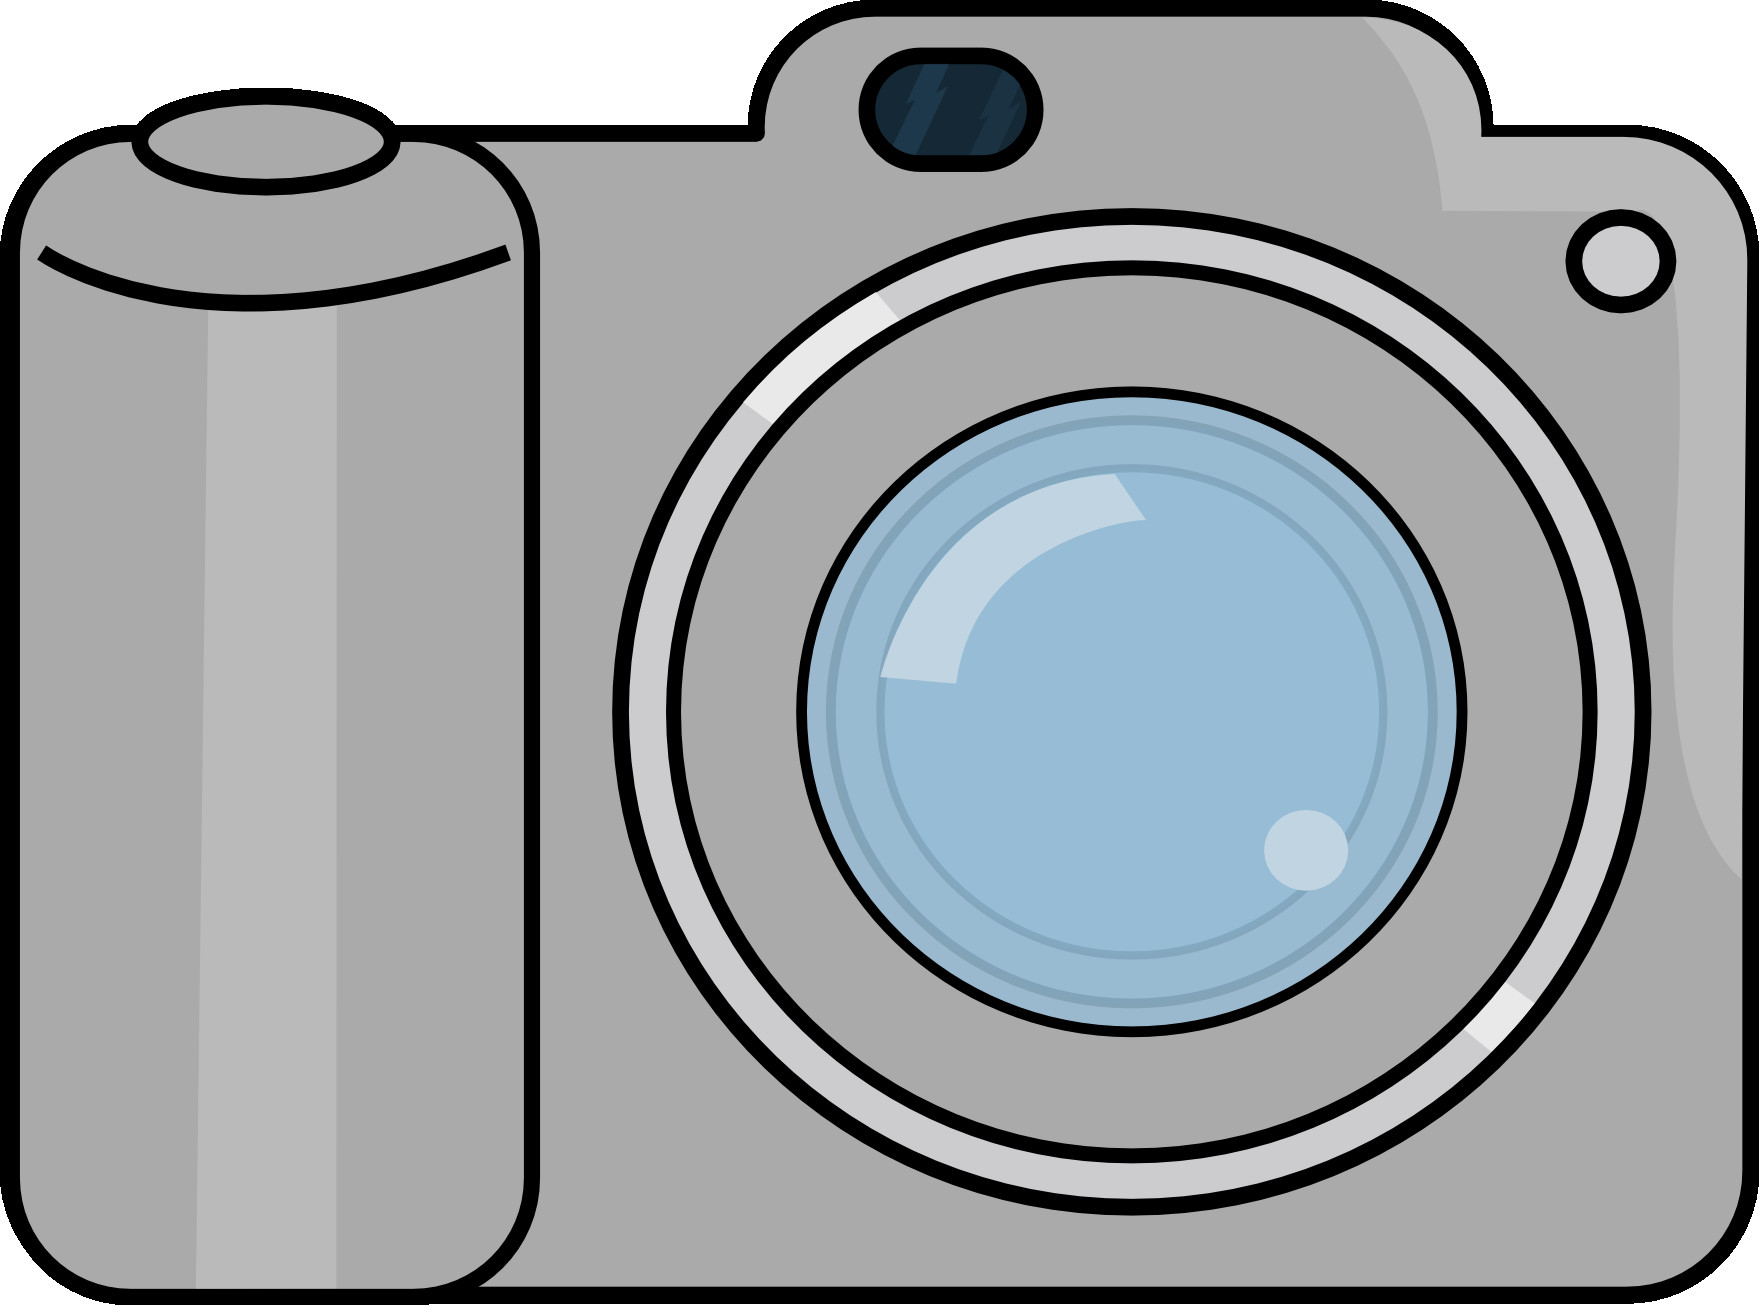 1759x1305 Free Clip Art Camera Camera Iphone Ipad Free Image On Pixabay